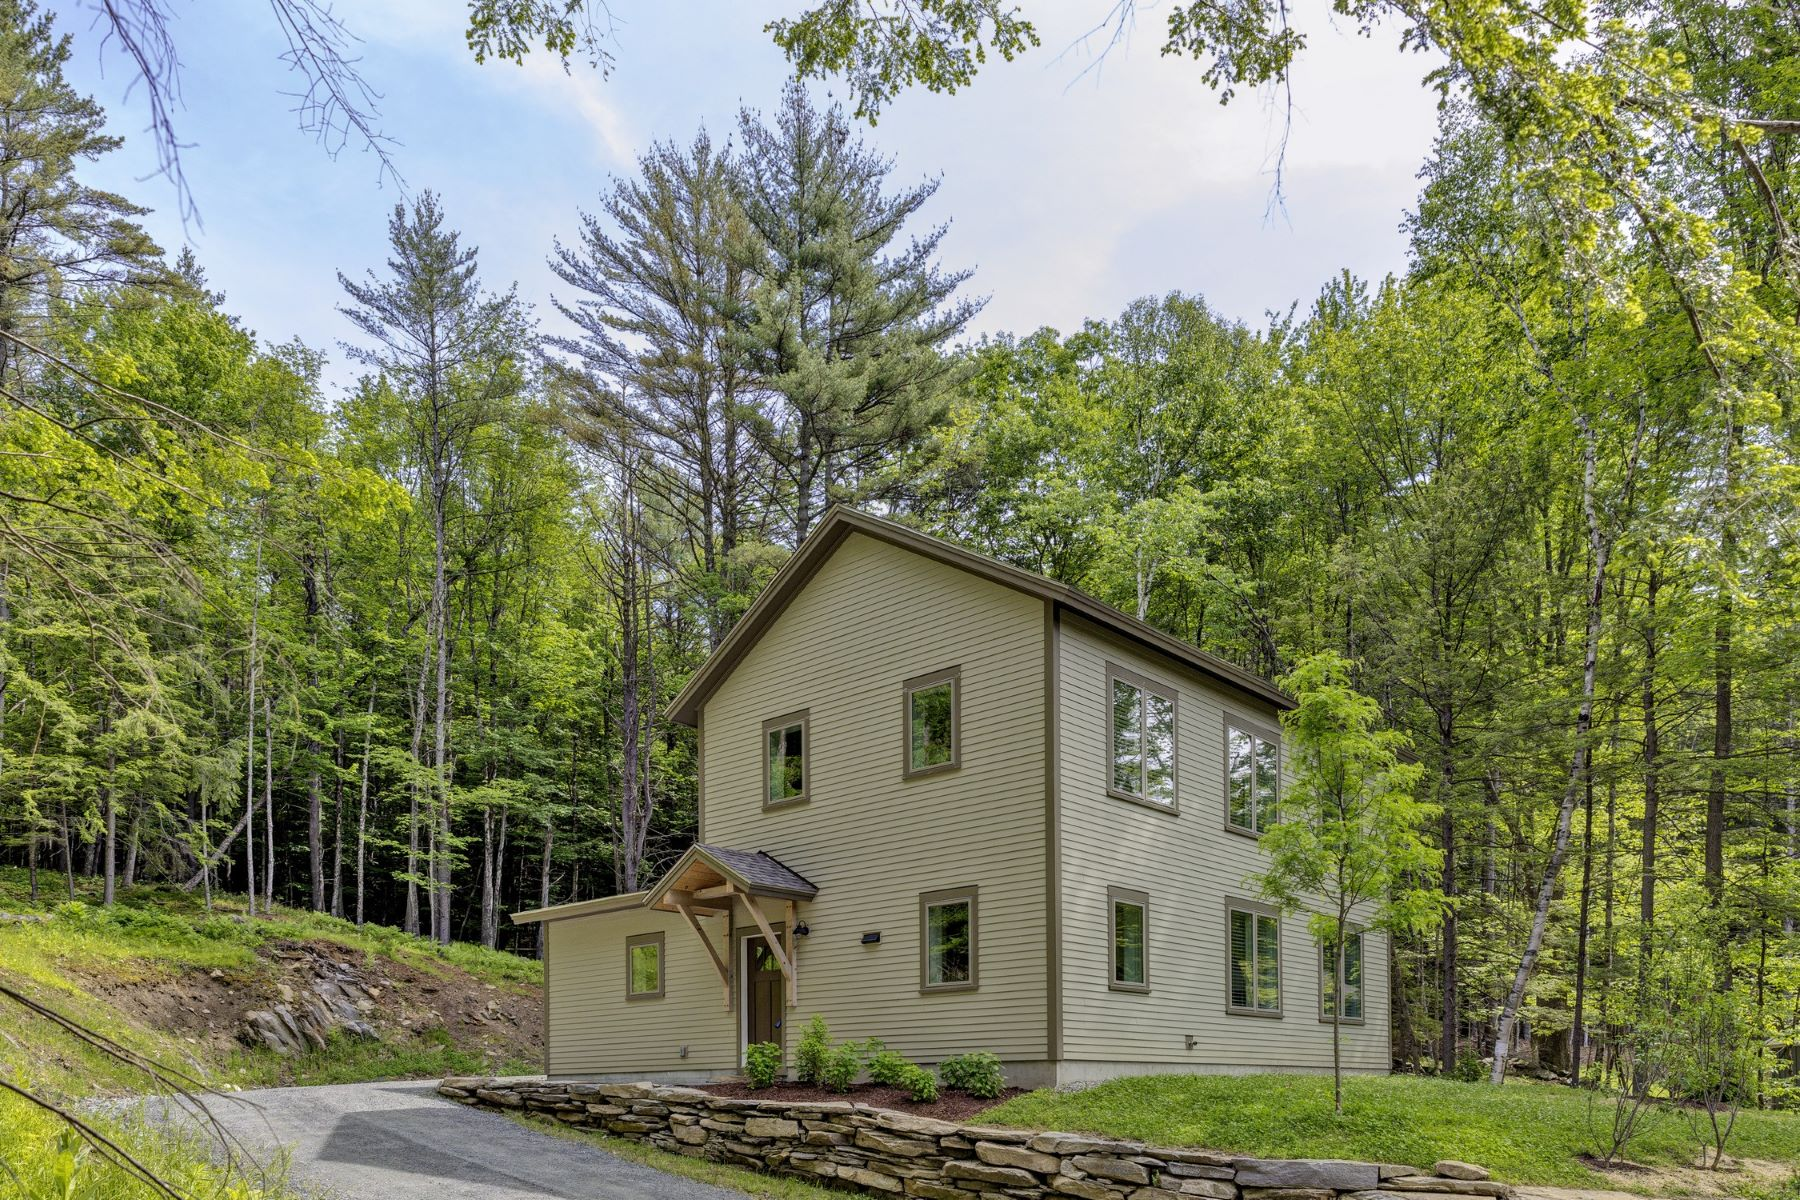 Single Family Homes for Sale at 207 Hartness Way 5328, Hartford 207 Hartness Way 5328 Hartford, Vermont 05059 United States